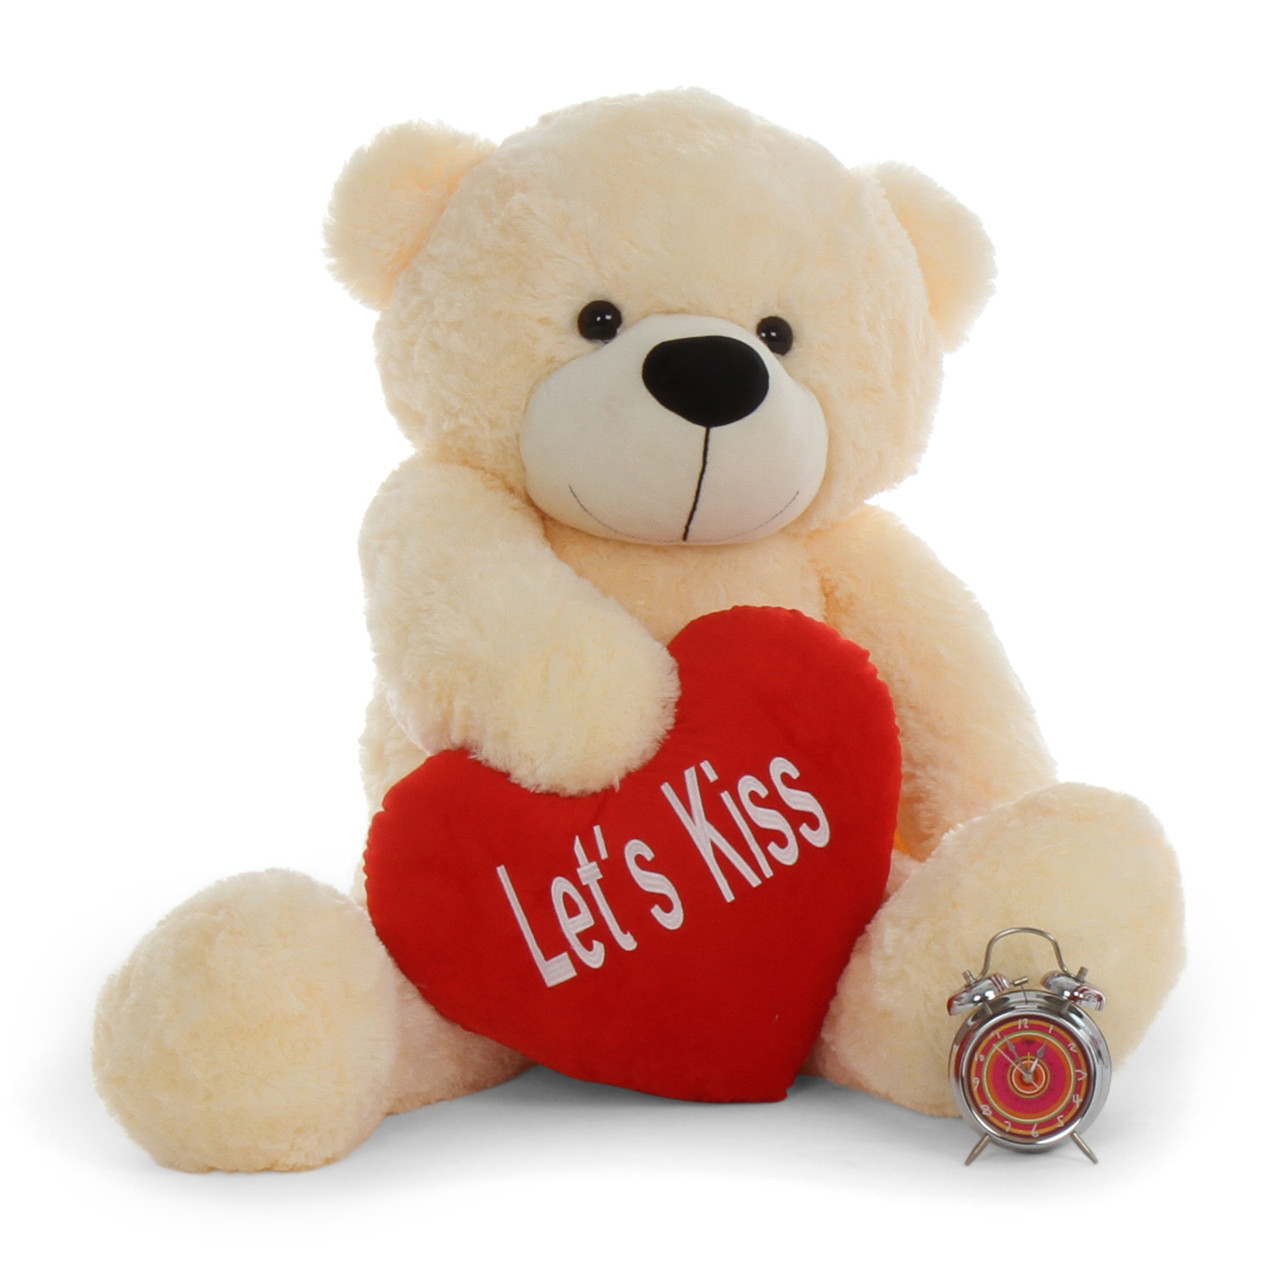 Großartig 4ft Best Gift Teddy Bear For Valentine S Day With Let Kiss Plush Cuddles